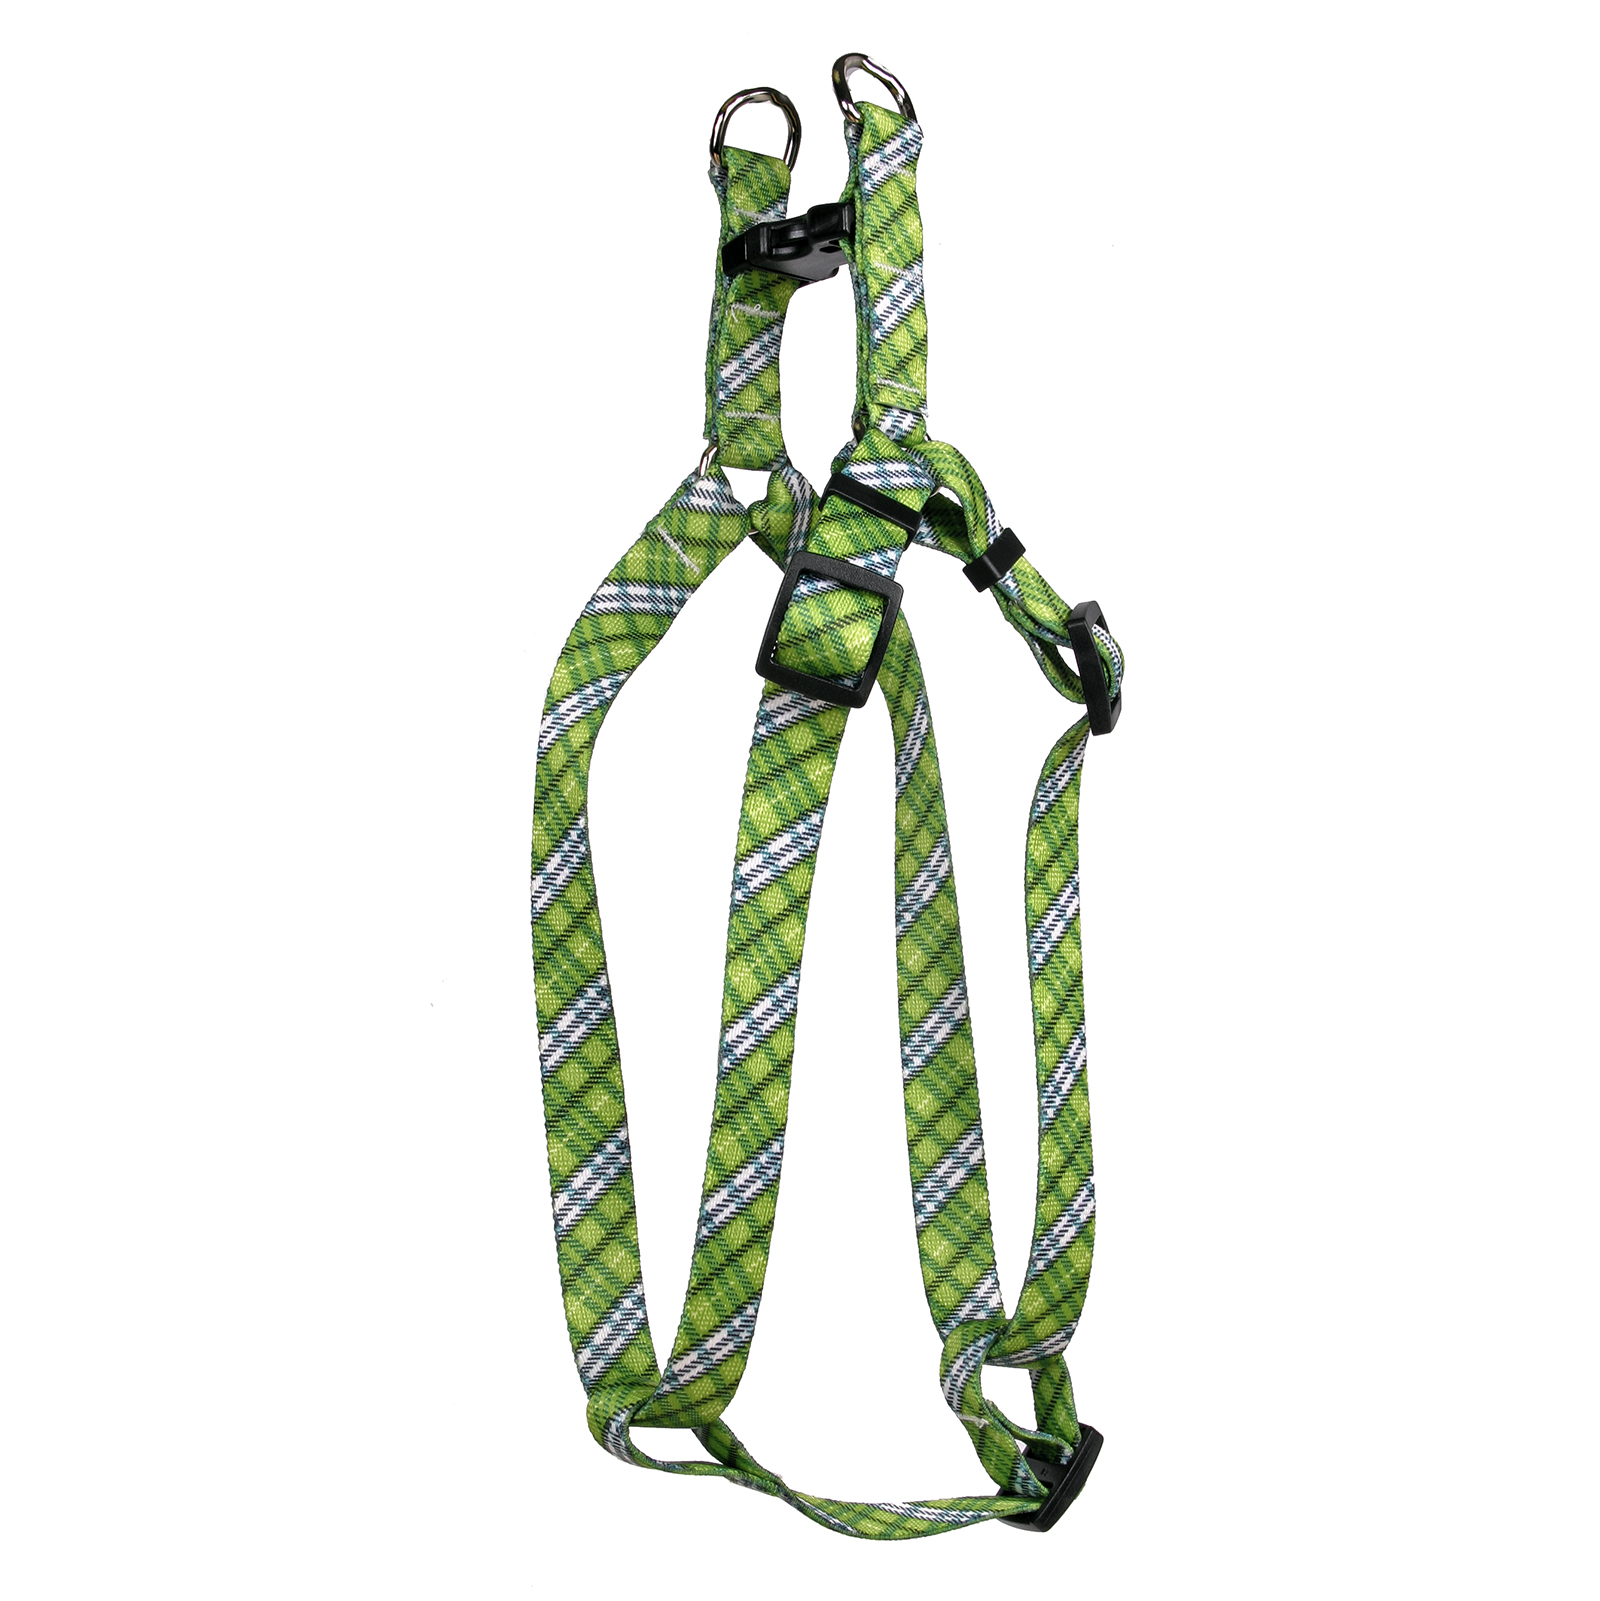 London Plaid Spring Green Step-In Harness